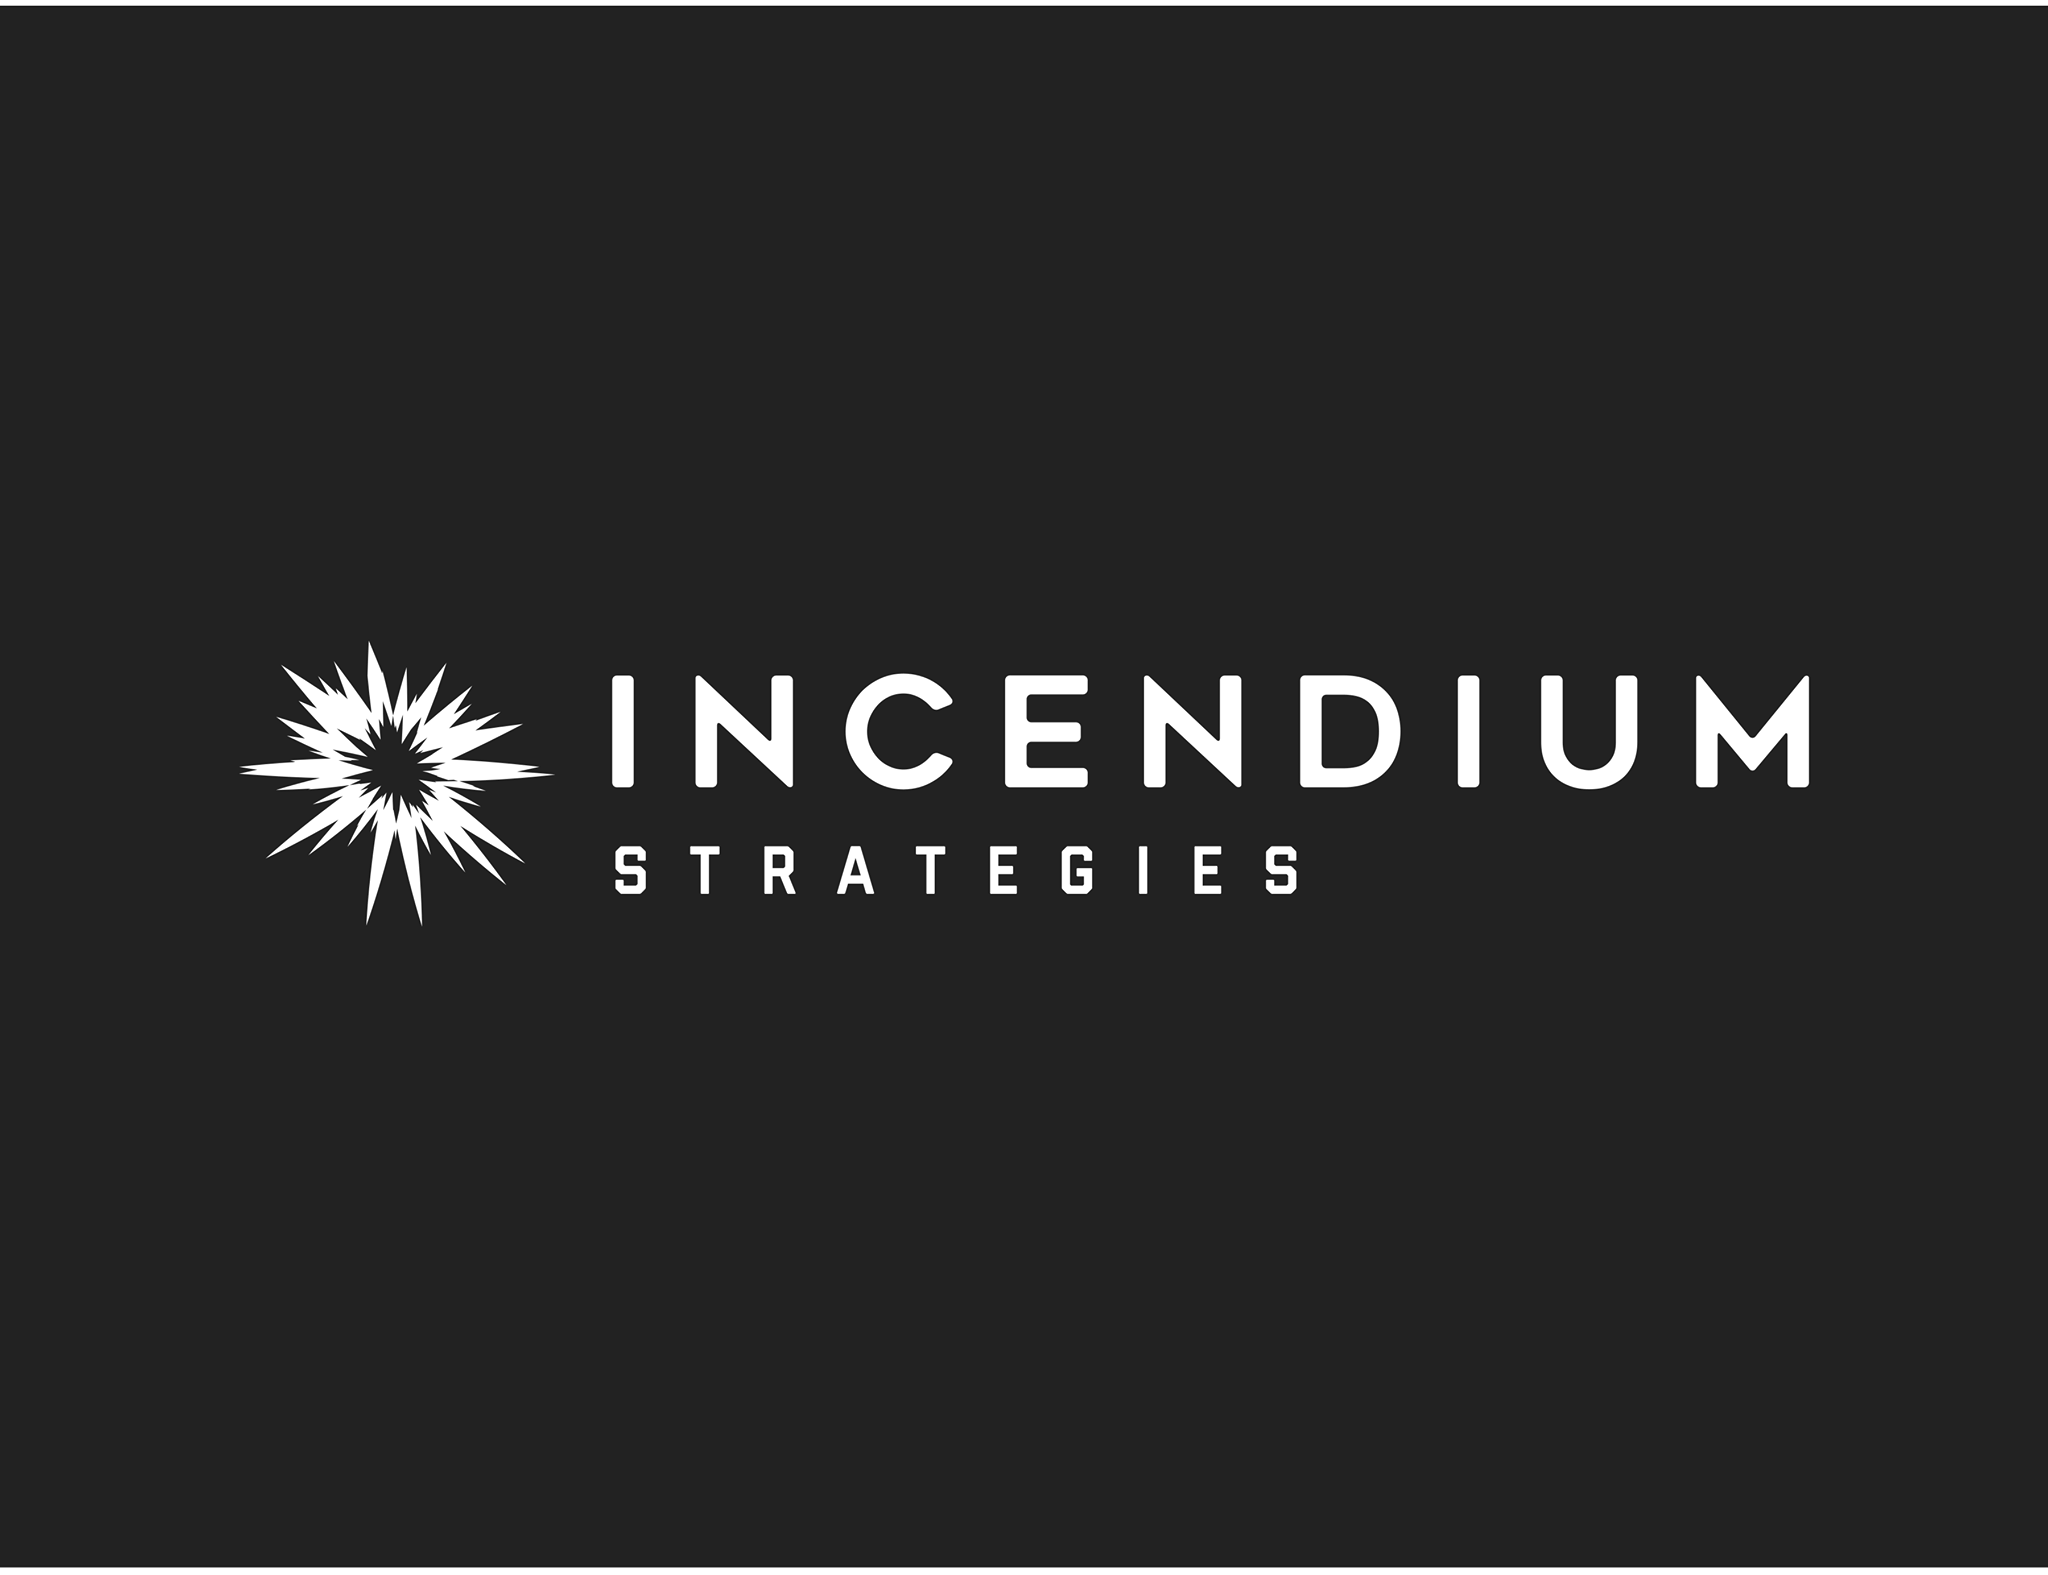 Incendium Strategies